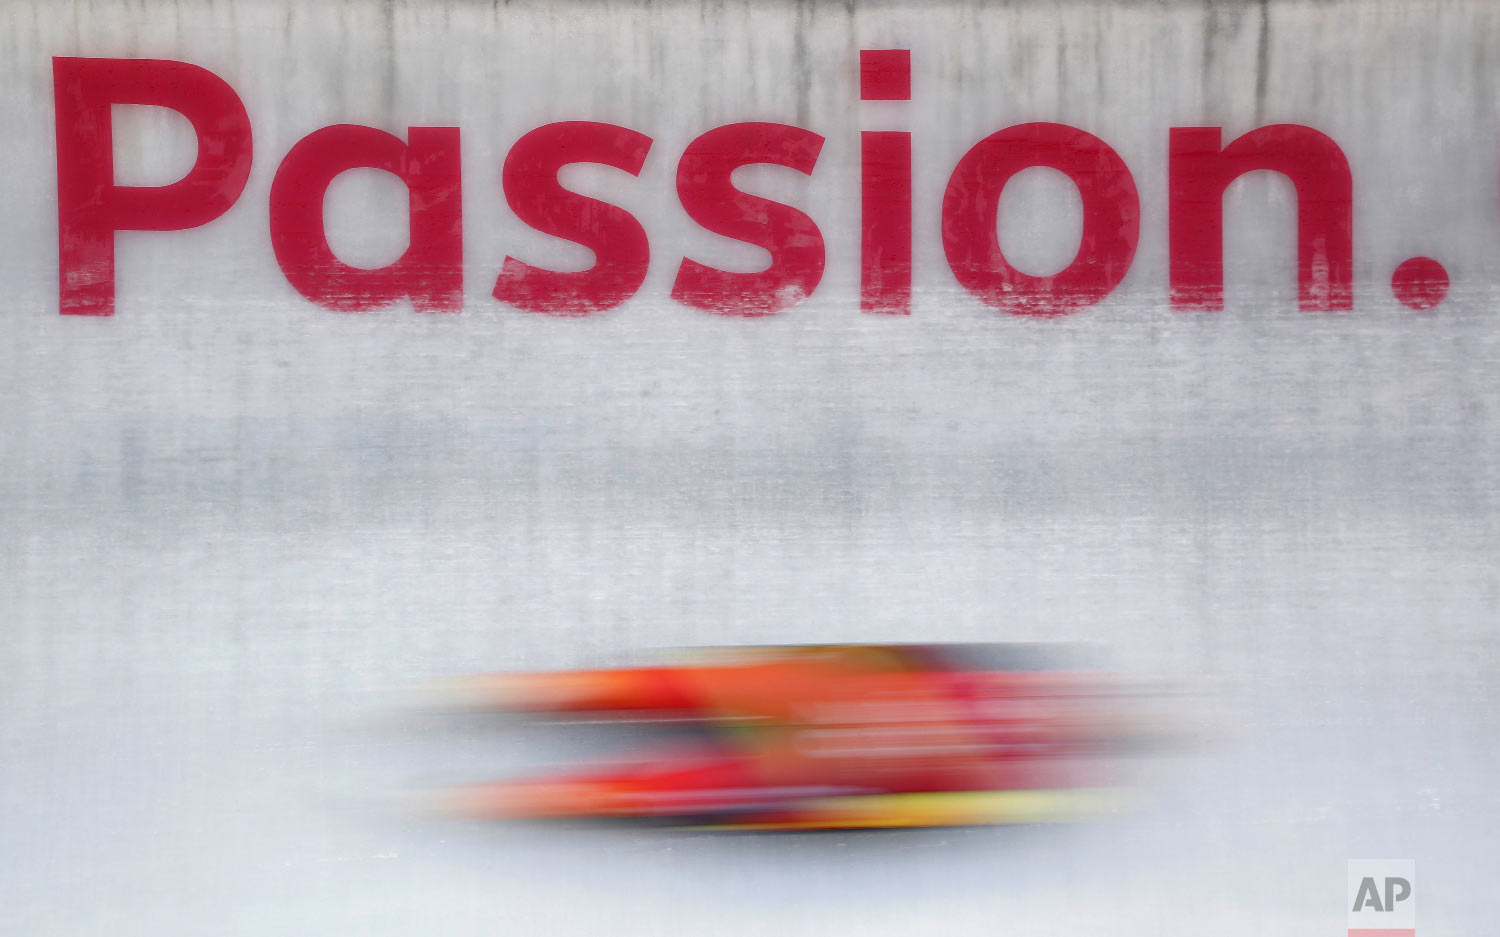 Natalie Geisenberger of Germany takes a training run at the 2018 Winter Olympics in Pyeongchang, South Korea, Saturday, Feb. 10, 2018. (AP Photo/Patrick Semansky)